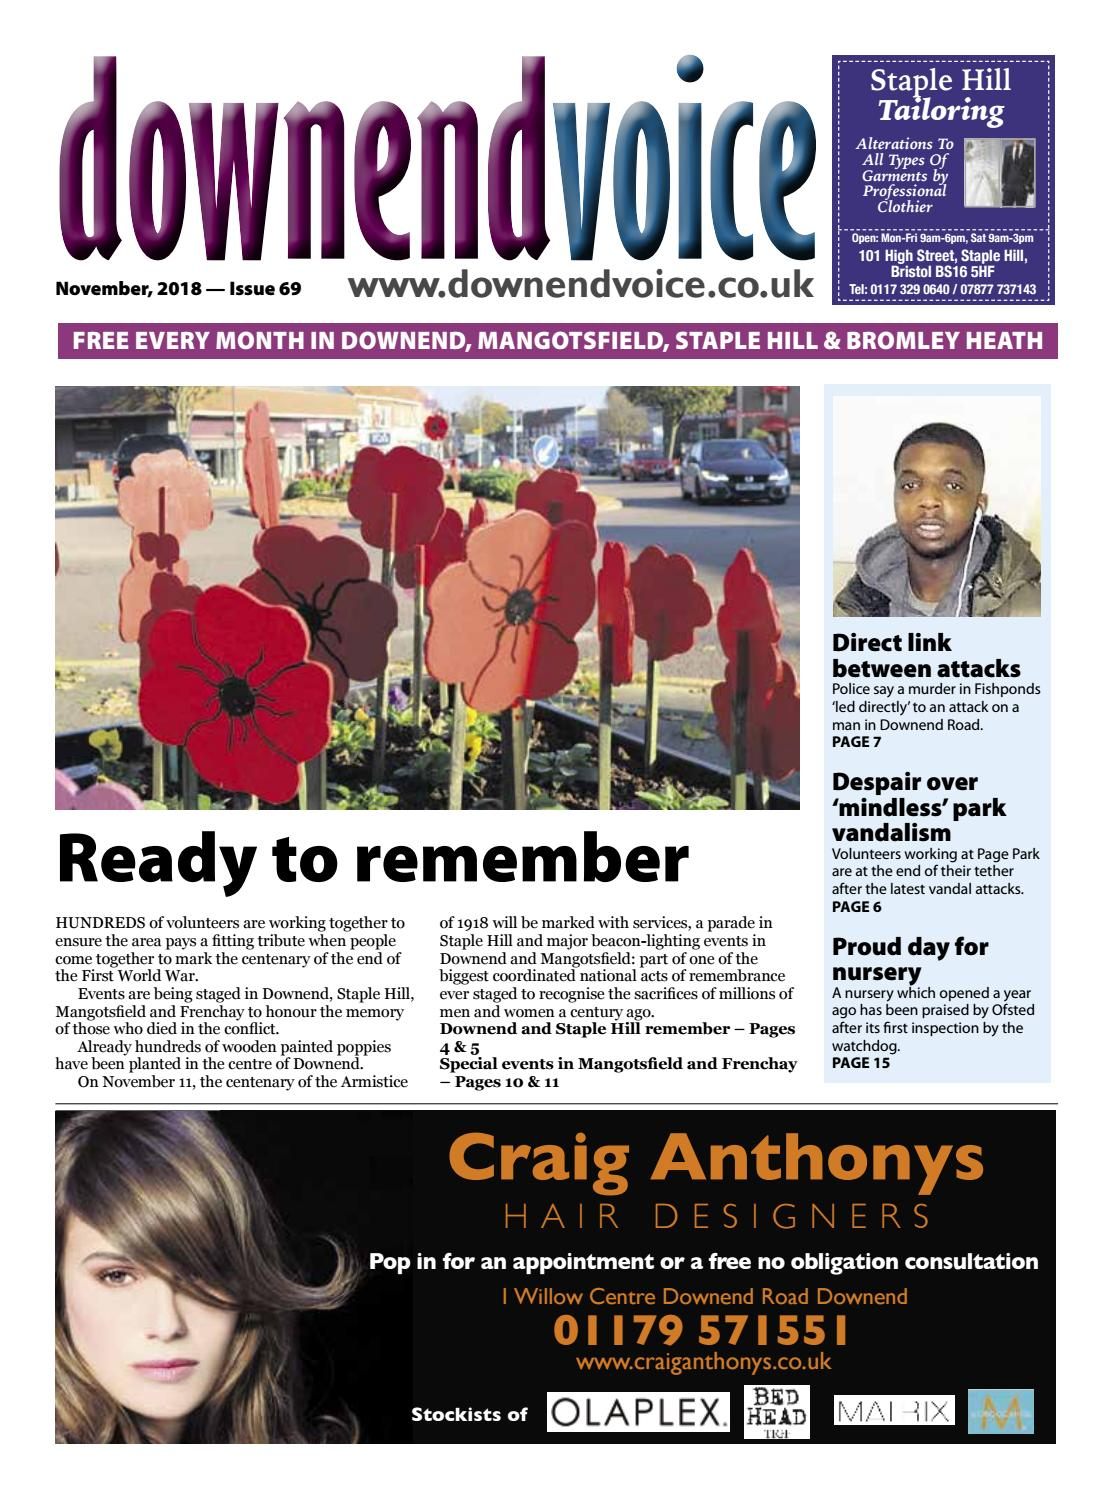 Downend Voice November 2018 by Gary Brindle - issuu